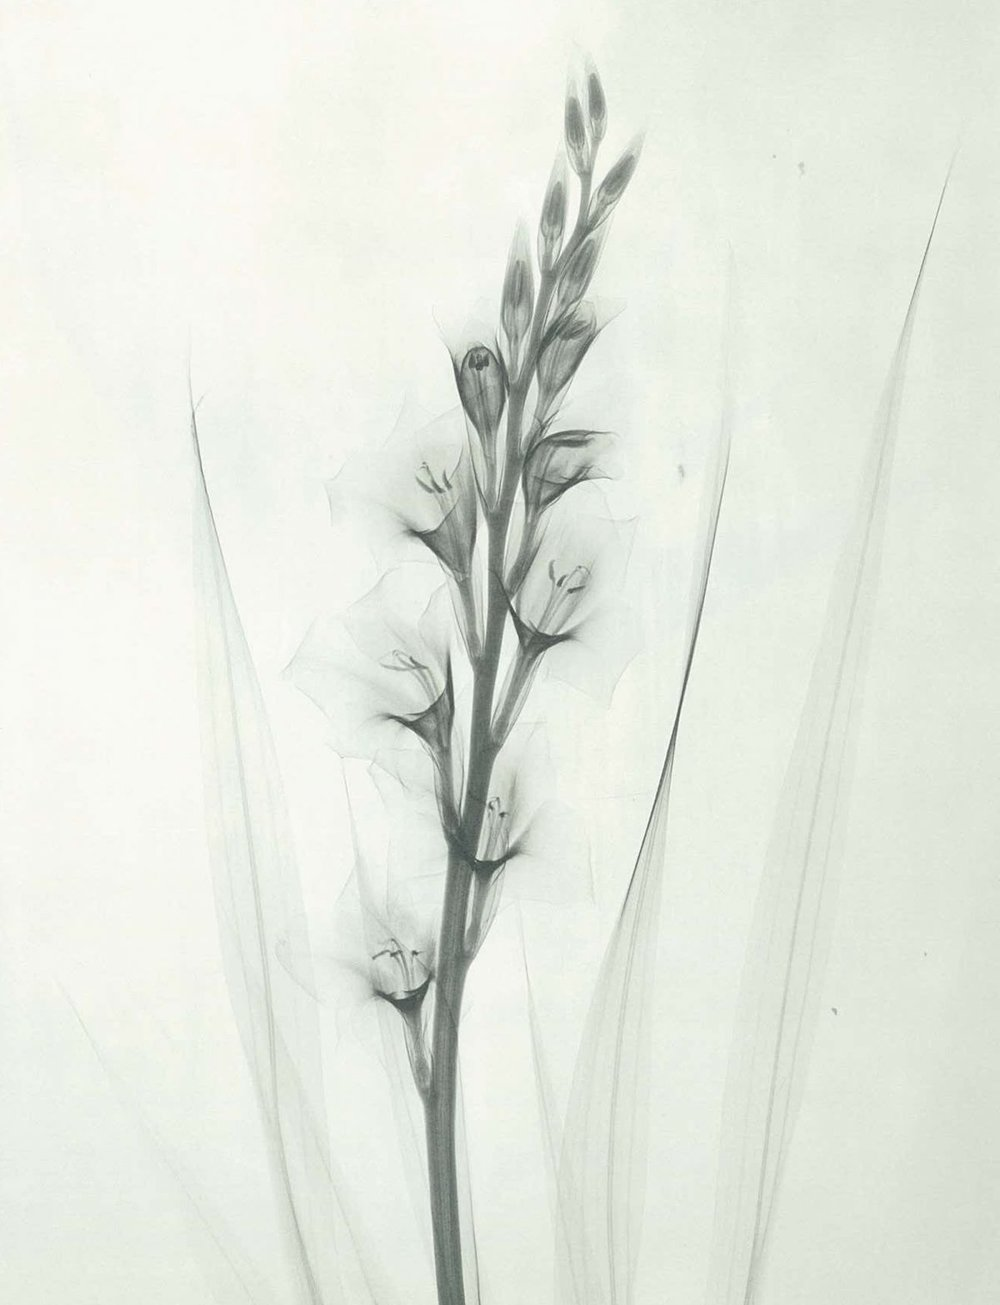 Minimalist Flower X-Rays From The 1930s